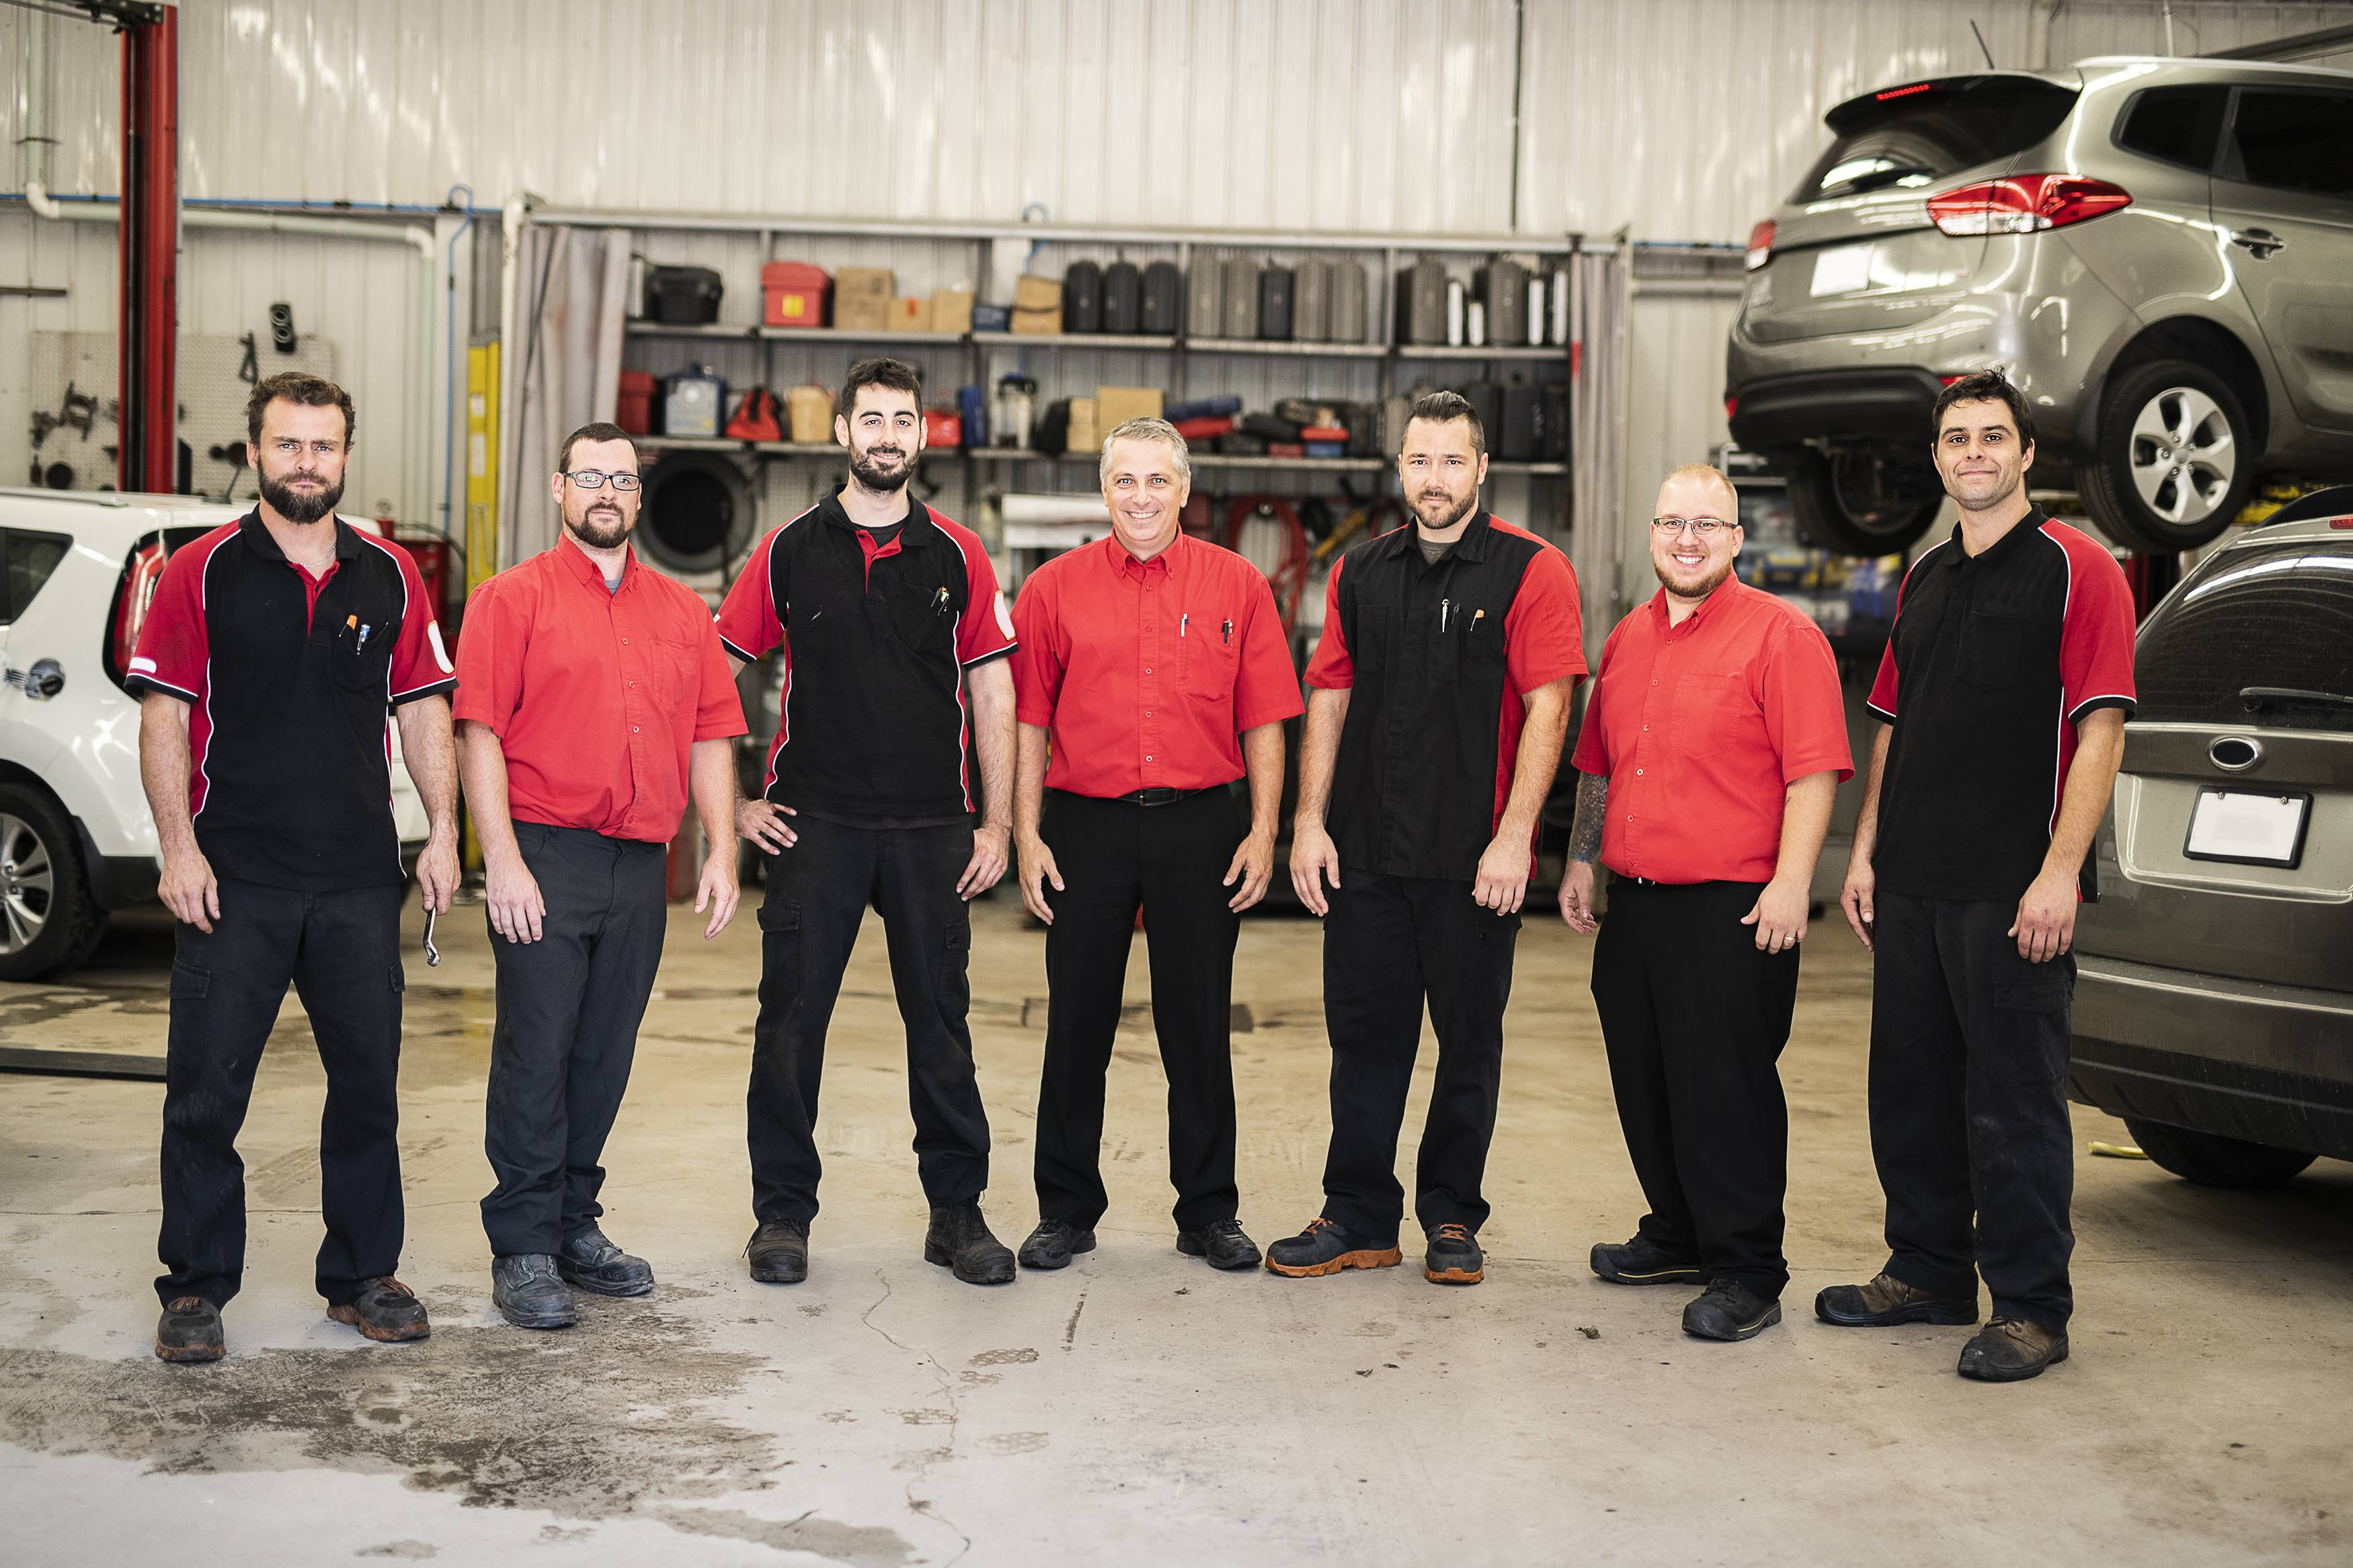 5 Tips to Turn Your Auto Repair Shop into a $1M Business